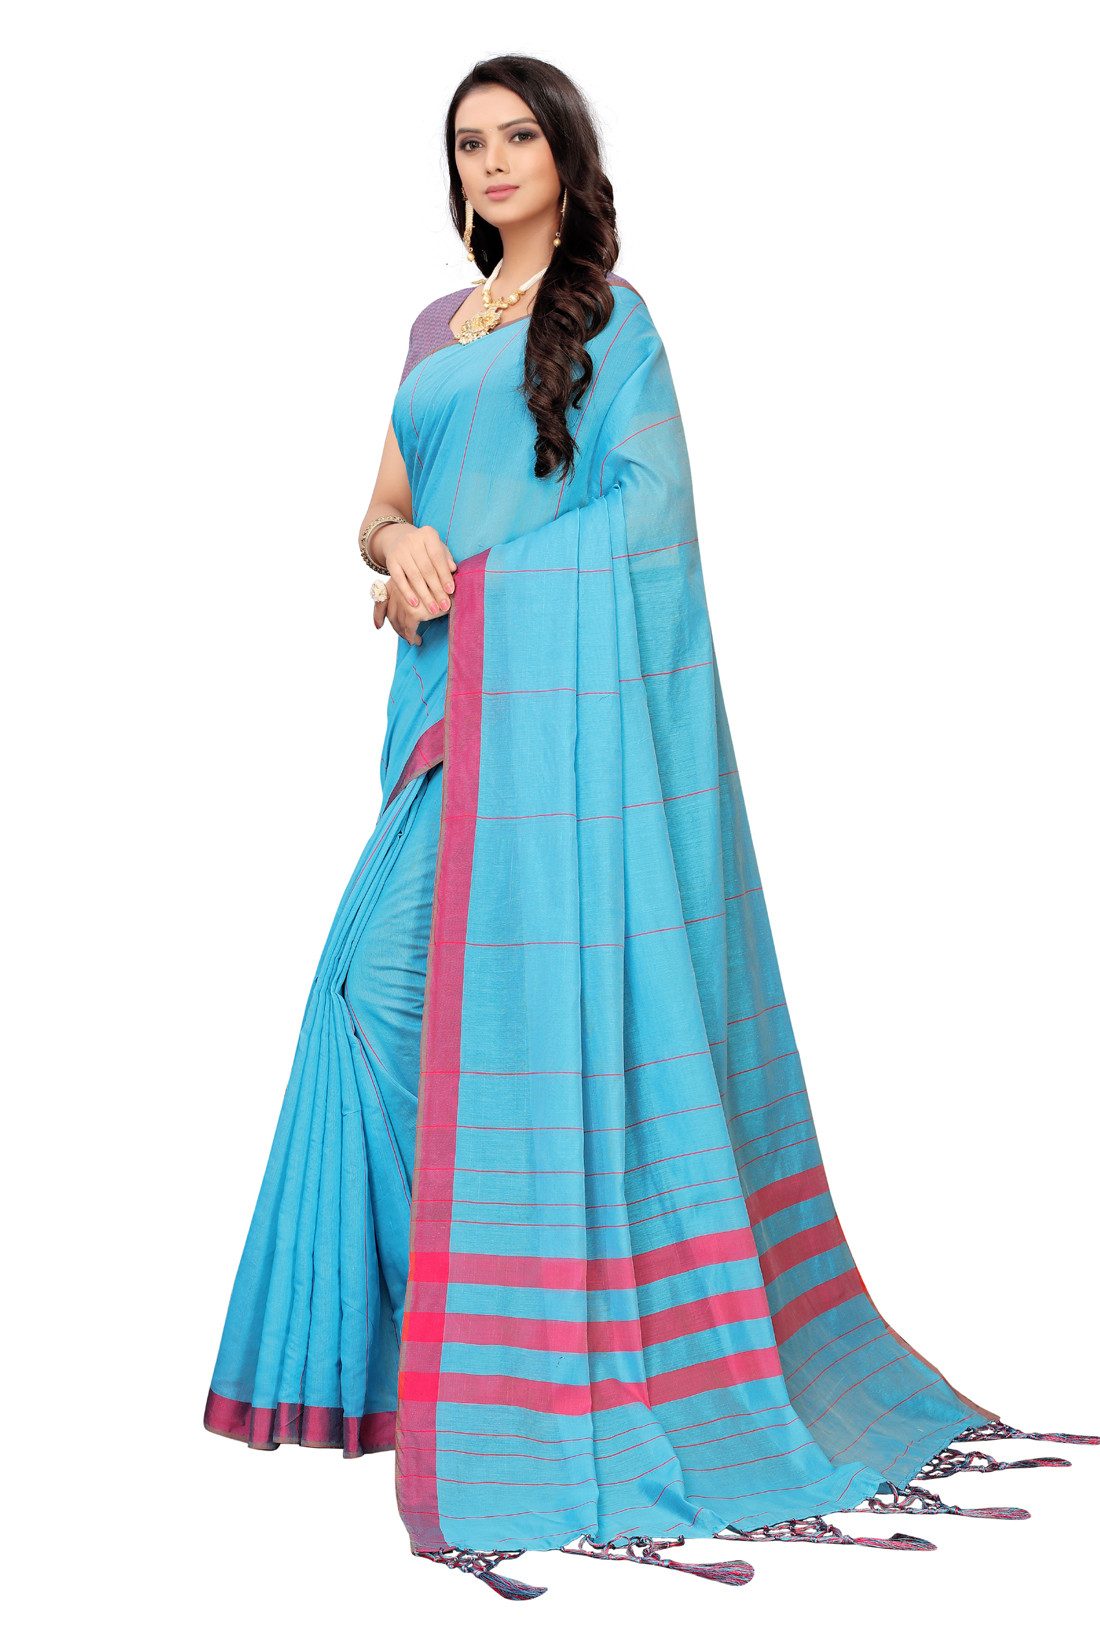 Daily Wear Maroon And Sky Blue Color Linen Saree